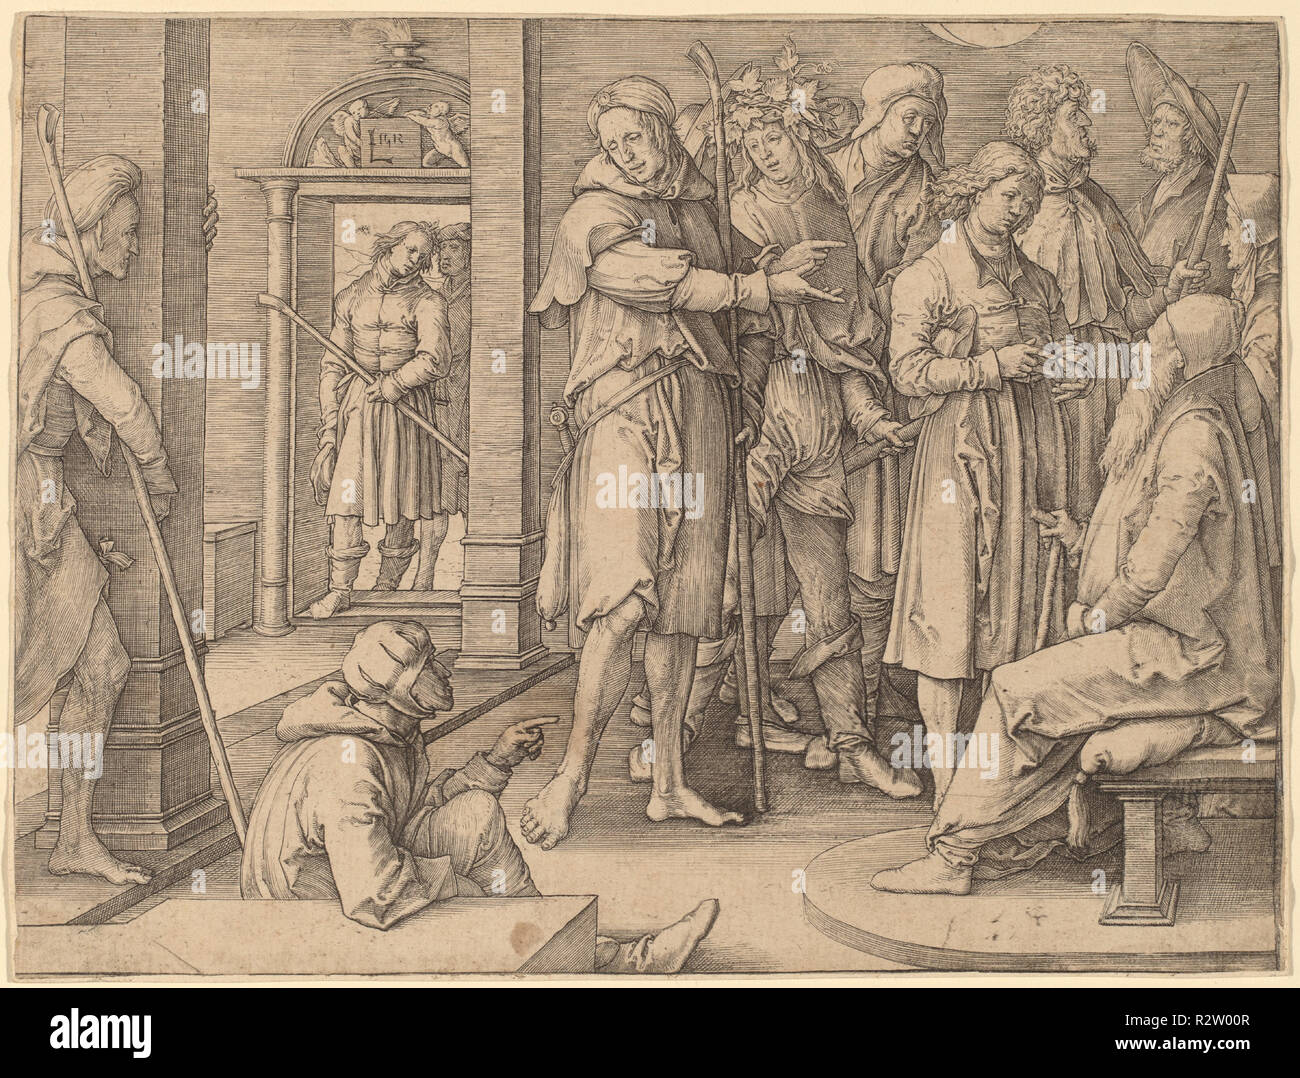 Joseph Interprets His Dream to Jacob. Dated: 1512. Medium: engraving. Museum: National Gallery of Art, Washington DC. Author: LUCAS VAN LEYDEN. - Stock Image